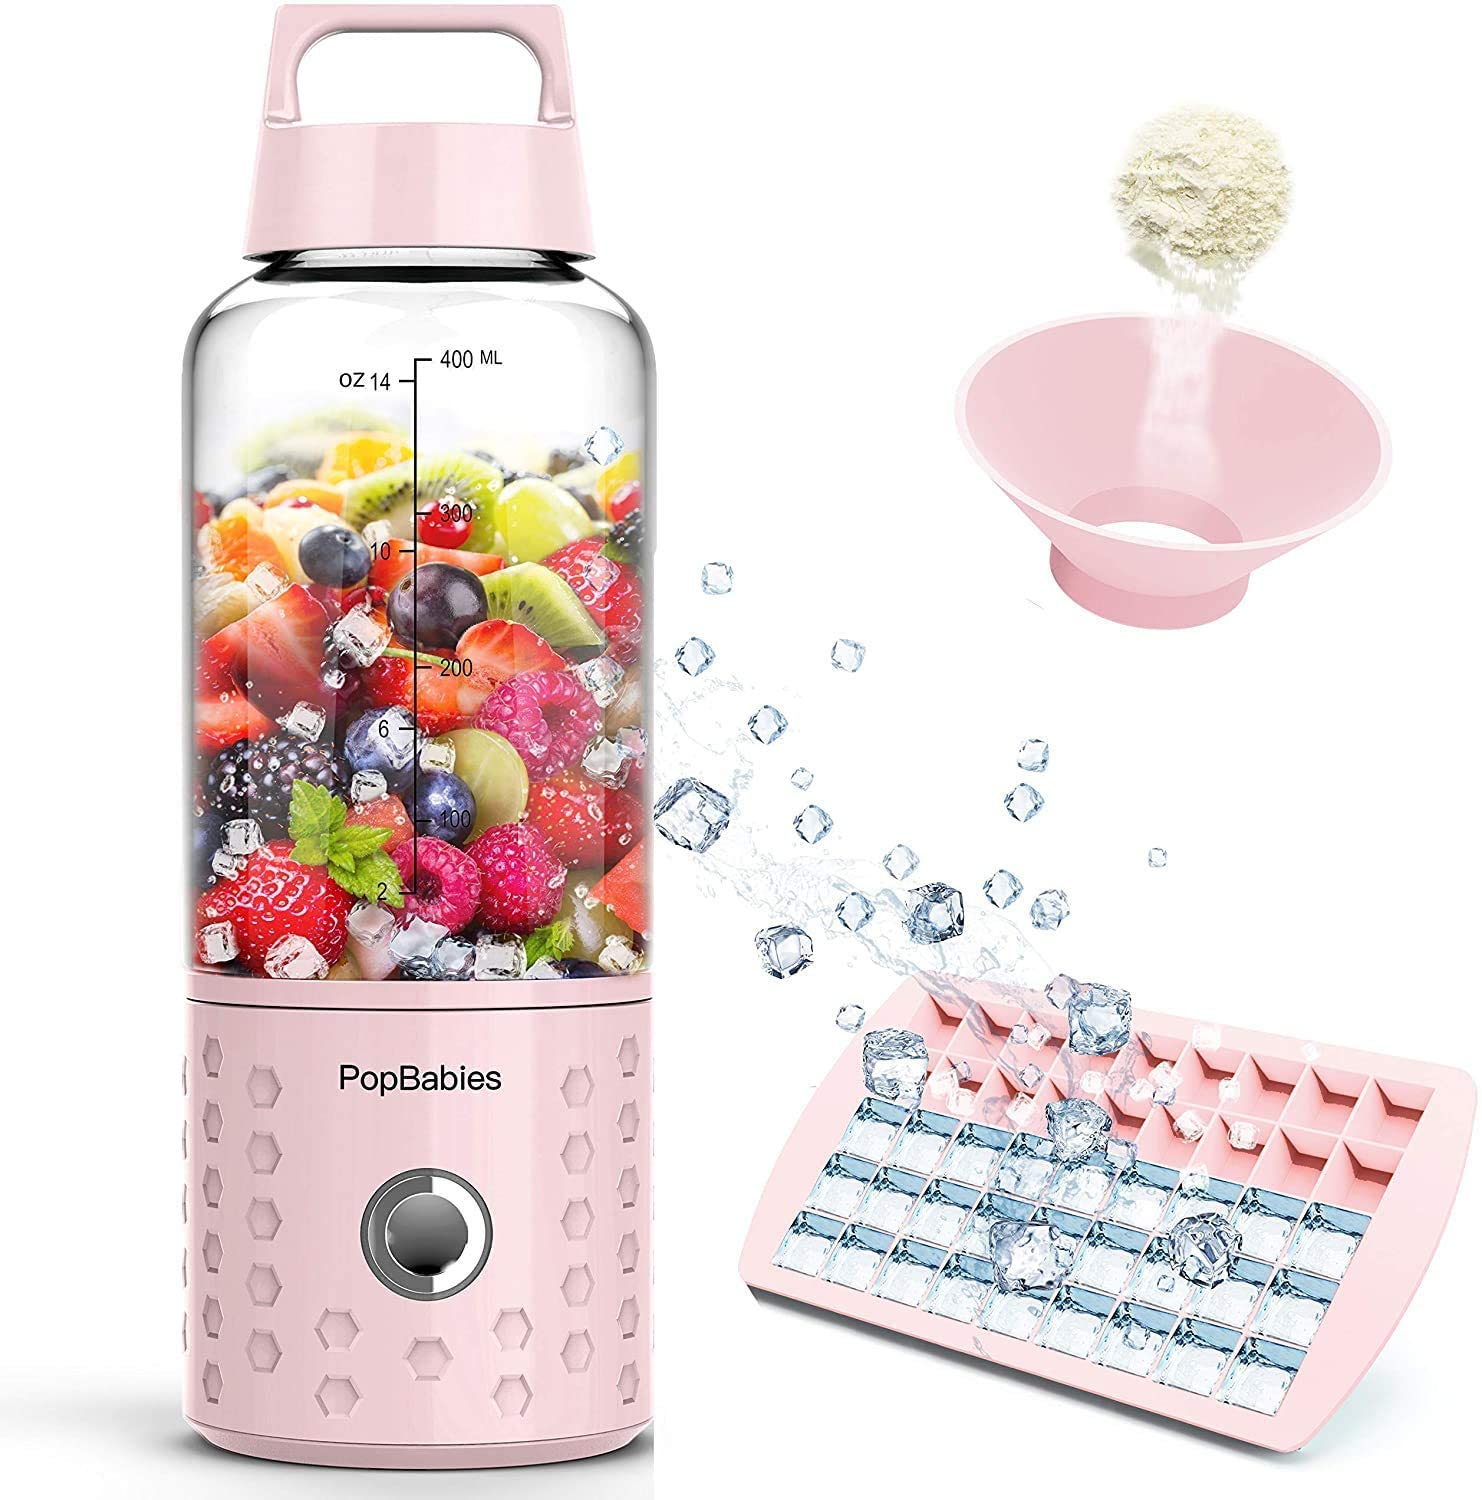 PopBabies Portable Personal Blender